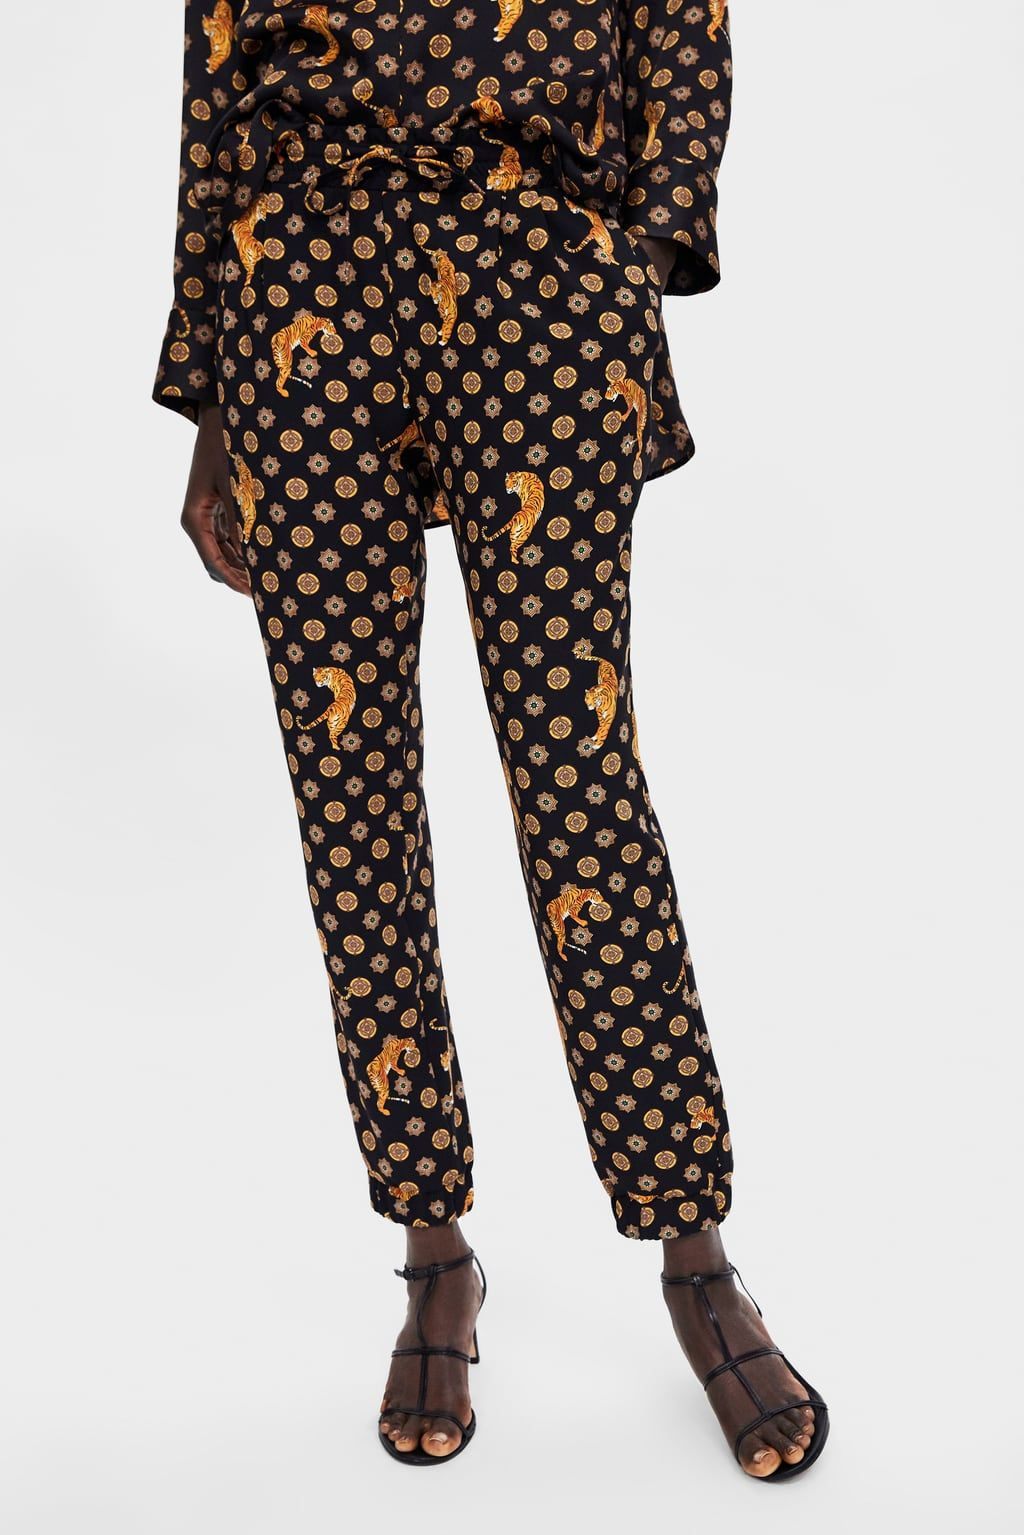 be4408507402 Image 2 of TIGER PRINTED PANTS from Zara | things i want but am too ...